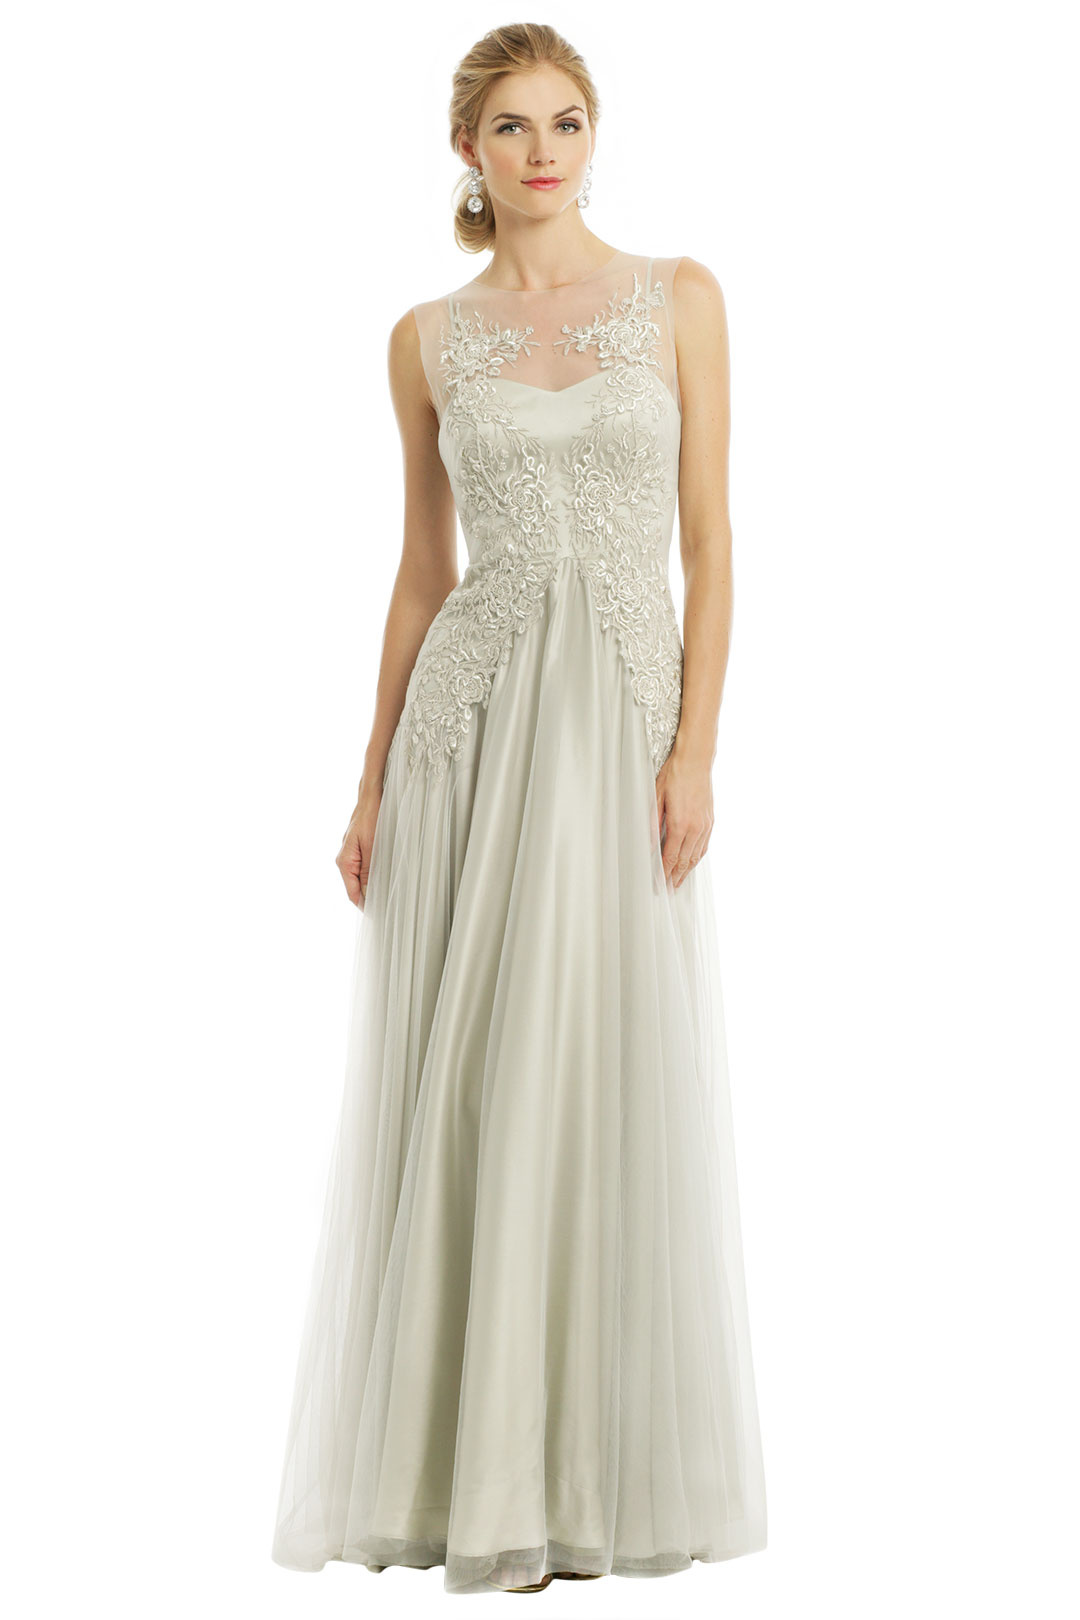 What to wear designer dresses to rent for any kind of for Where can i rent a wedding dress